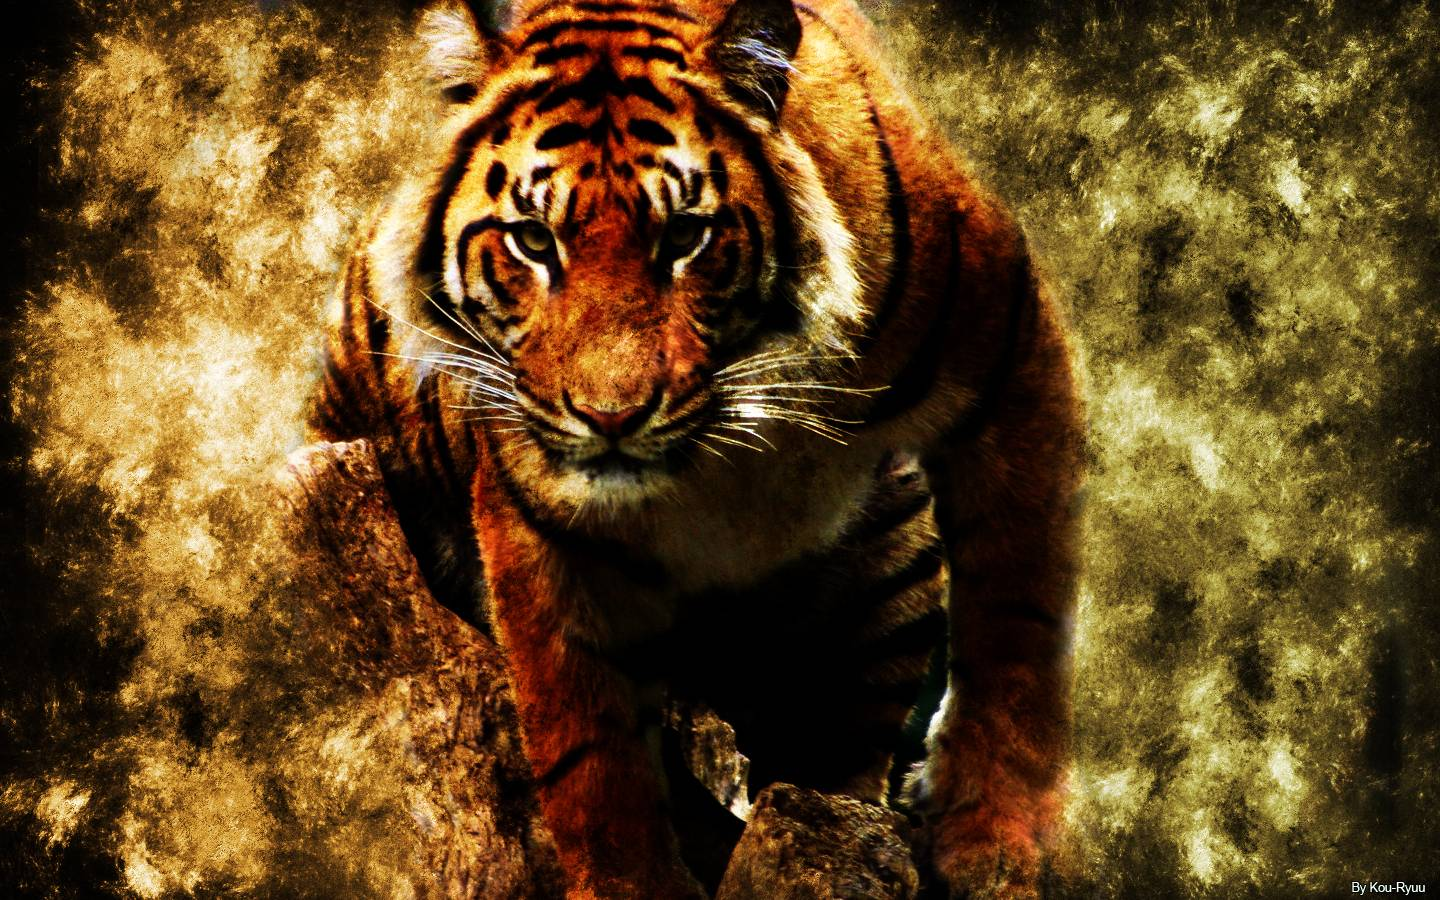 Hd Tiger Wallpapers For Desktop | Onlybackground